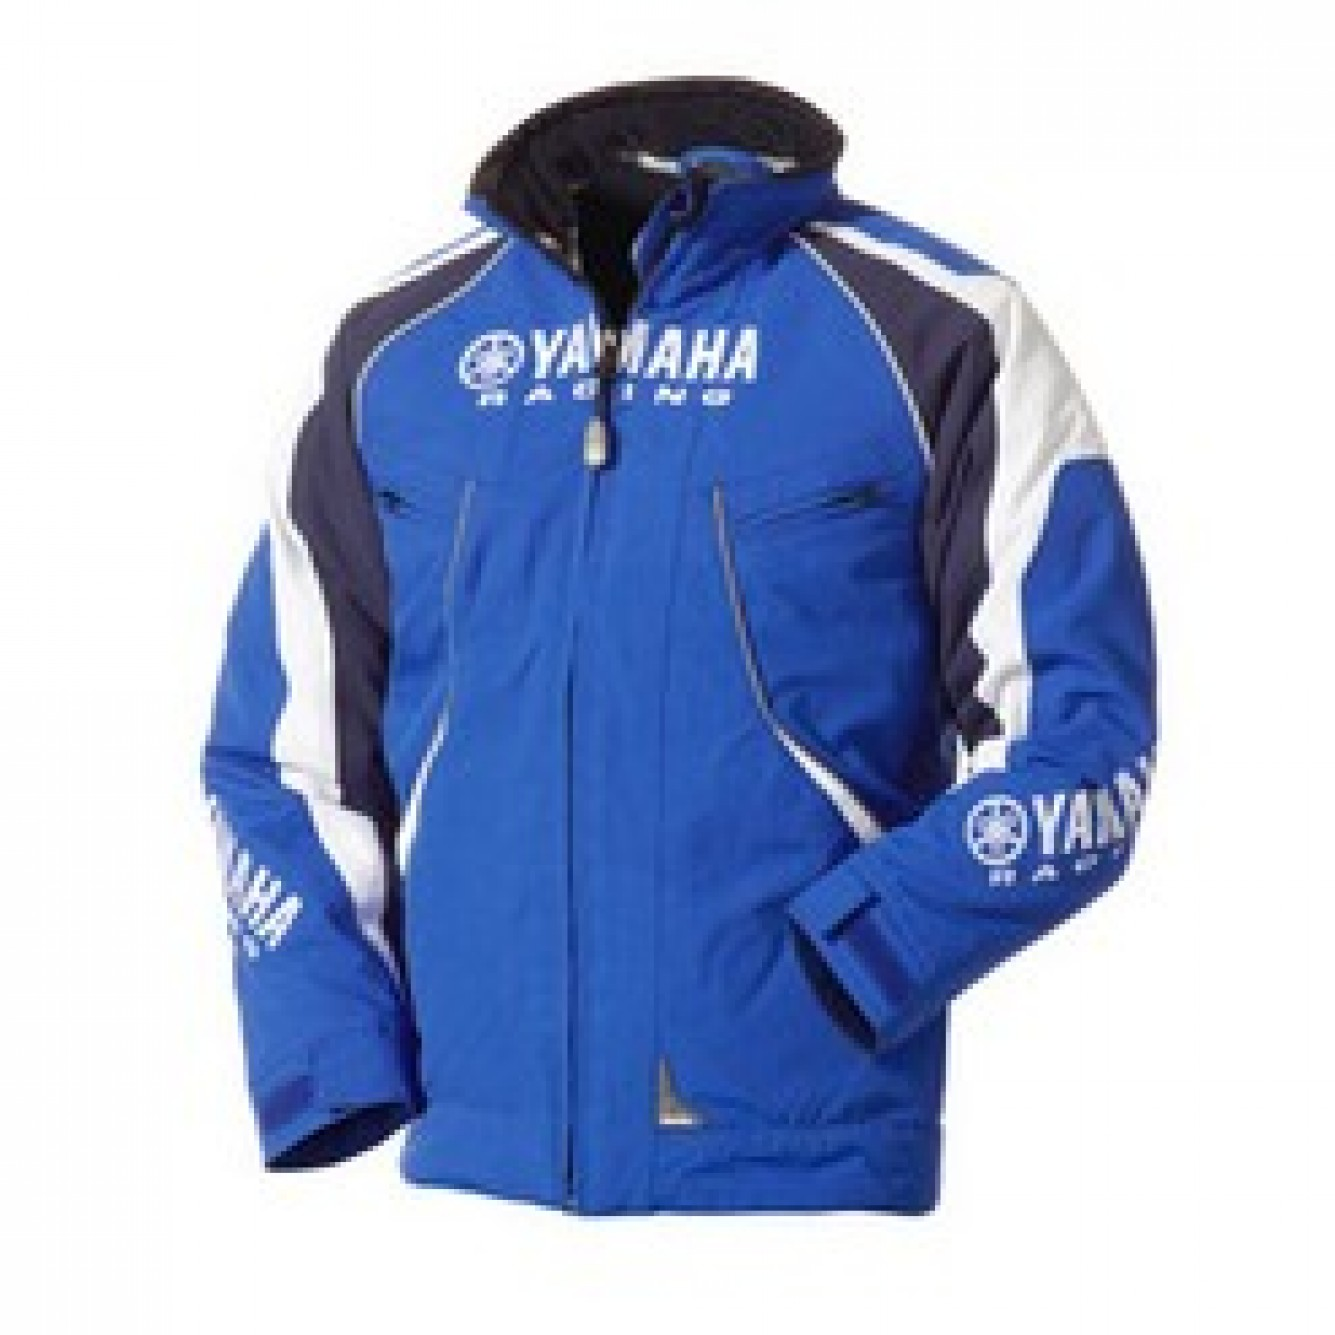 Yamaha Kids Paddock Jacket Blue